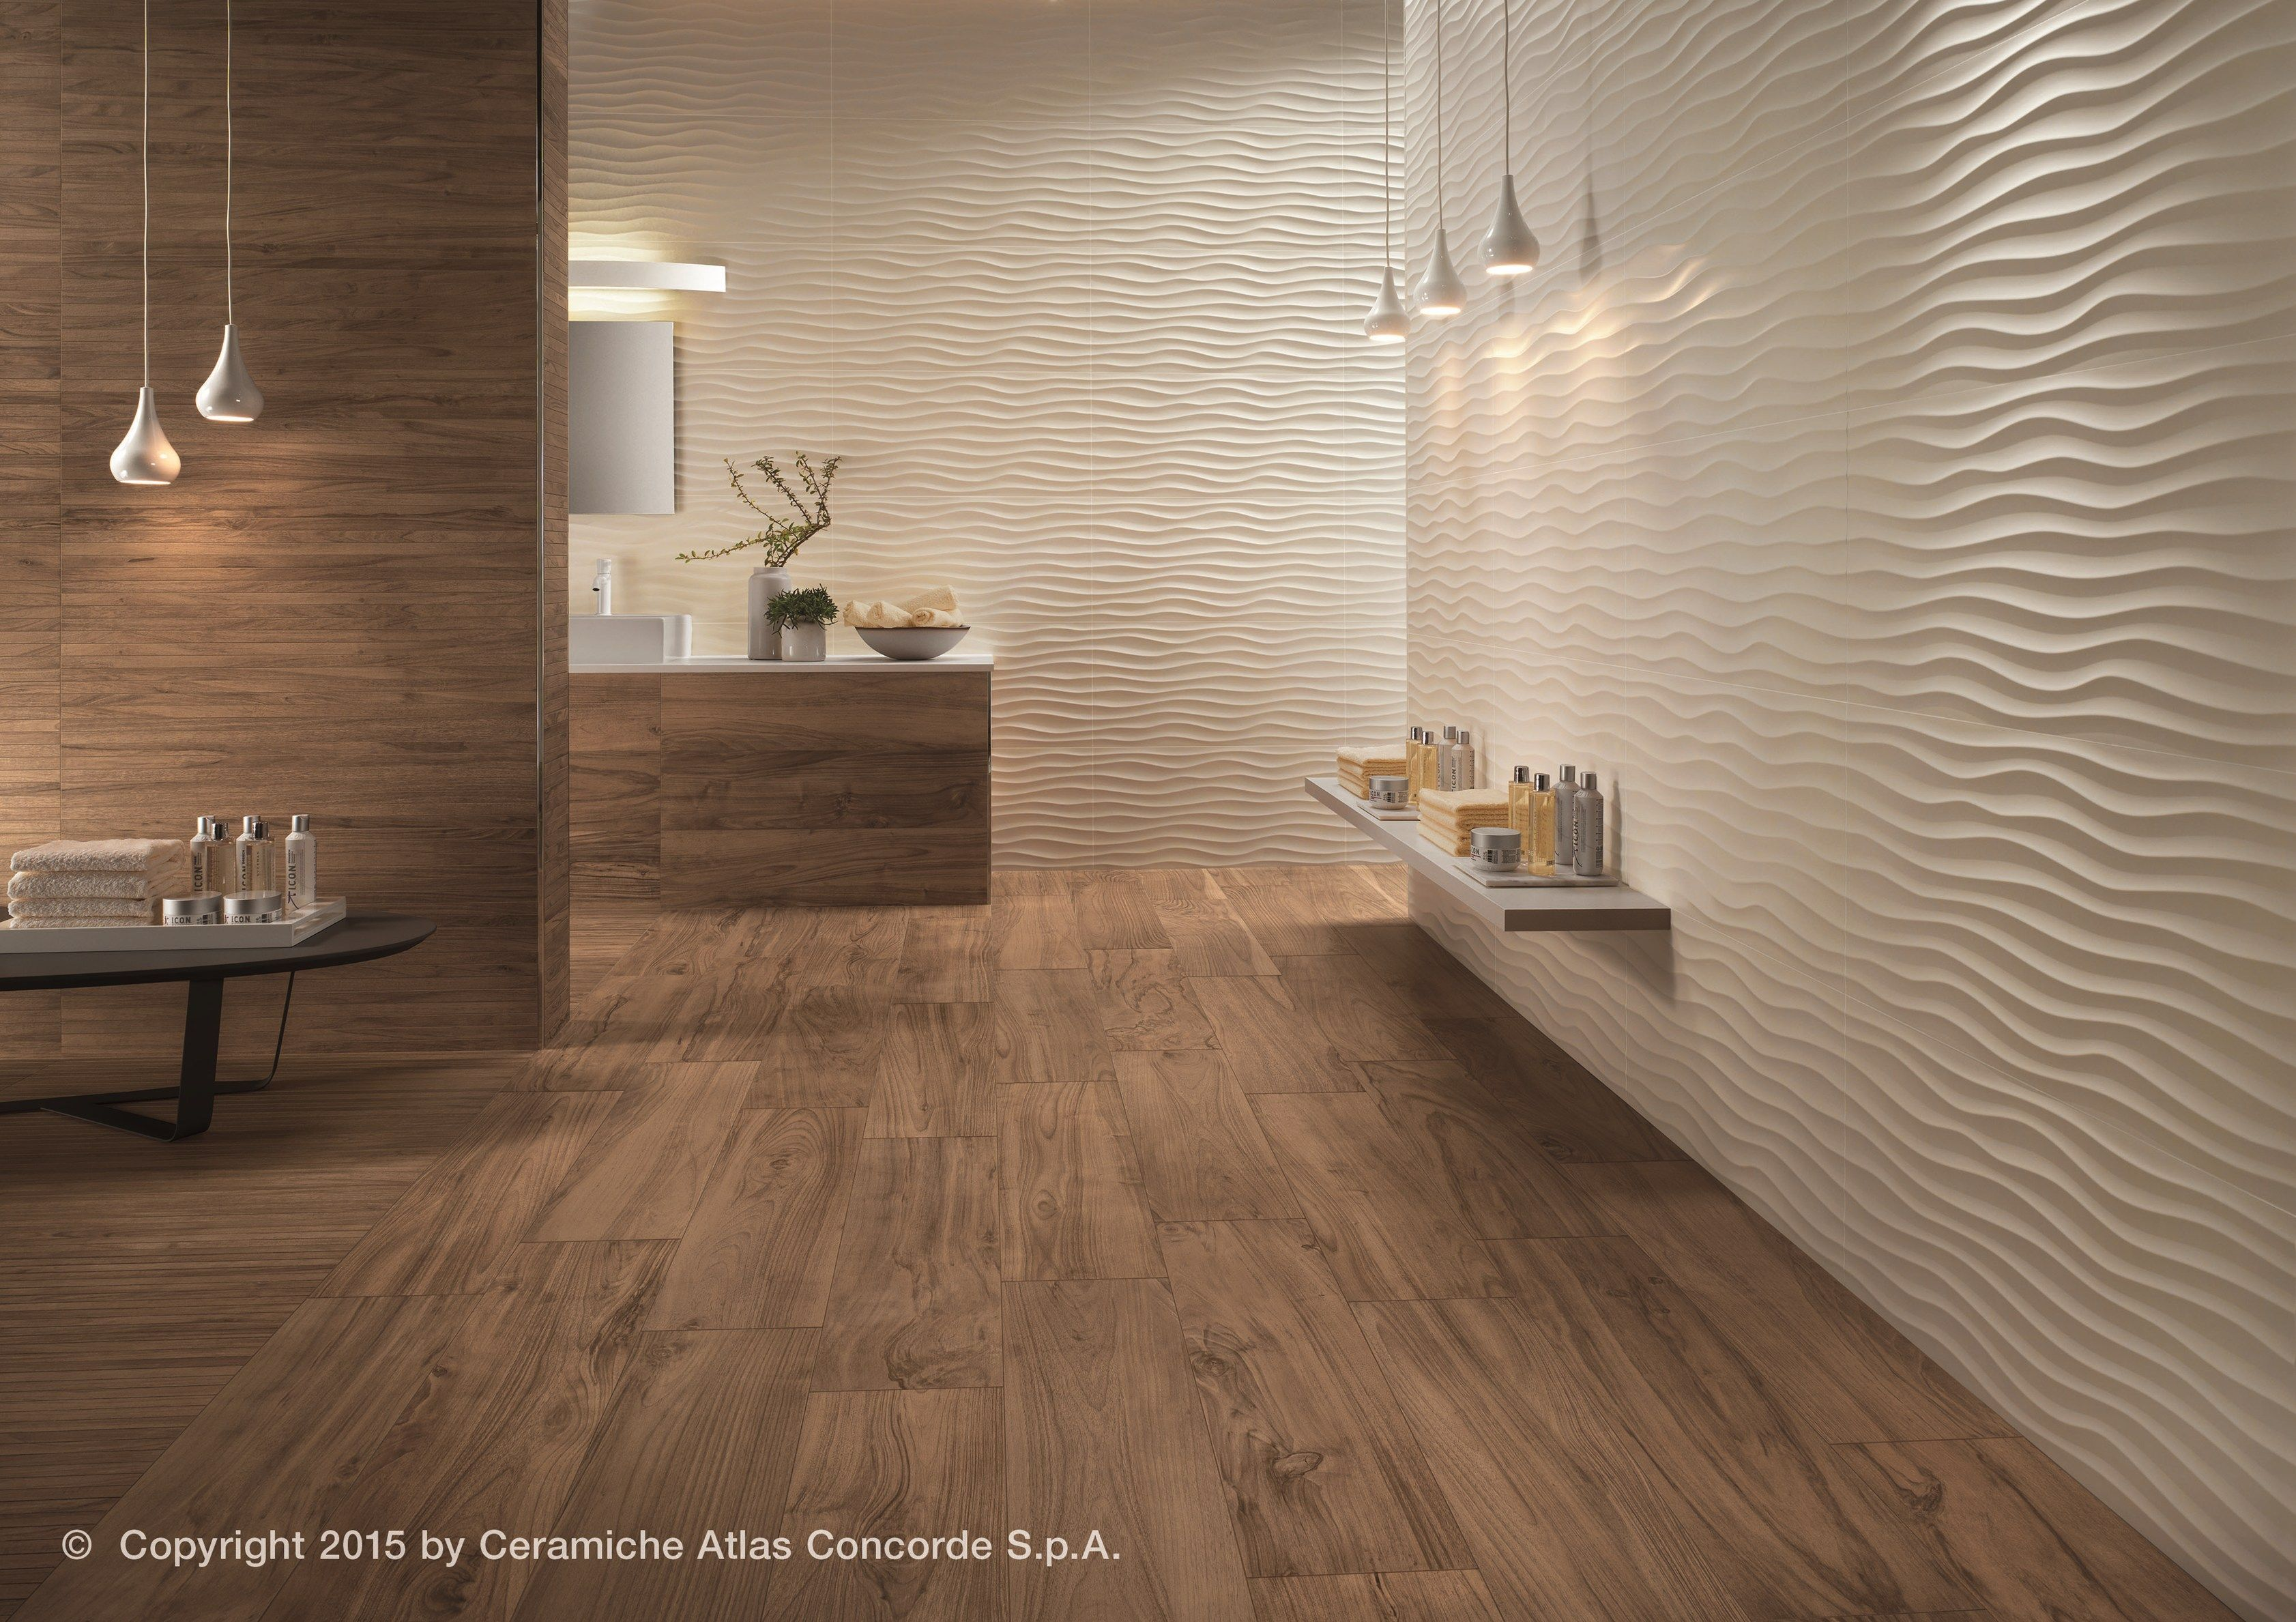 Rivestimento tridimensionale in ceramica a pasta bianca dune by